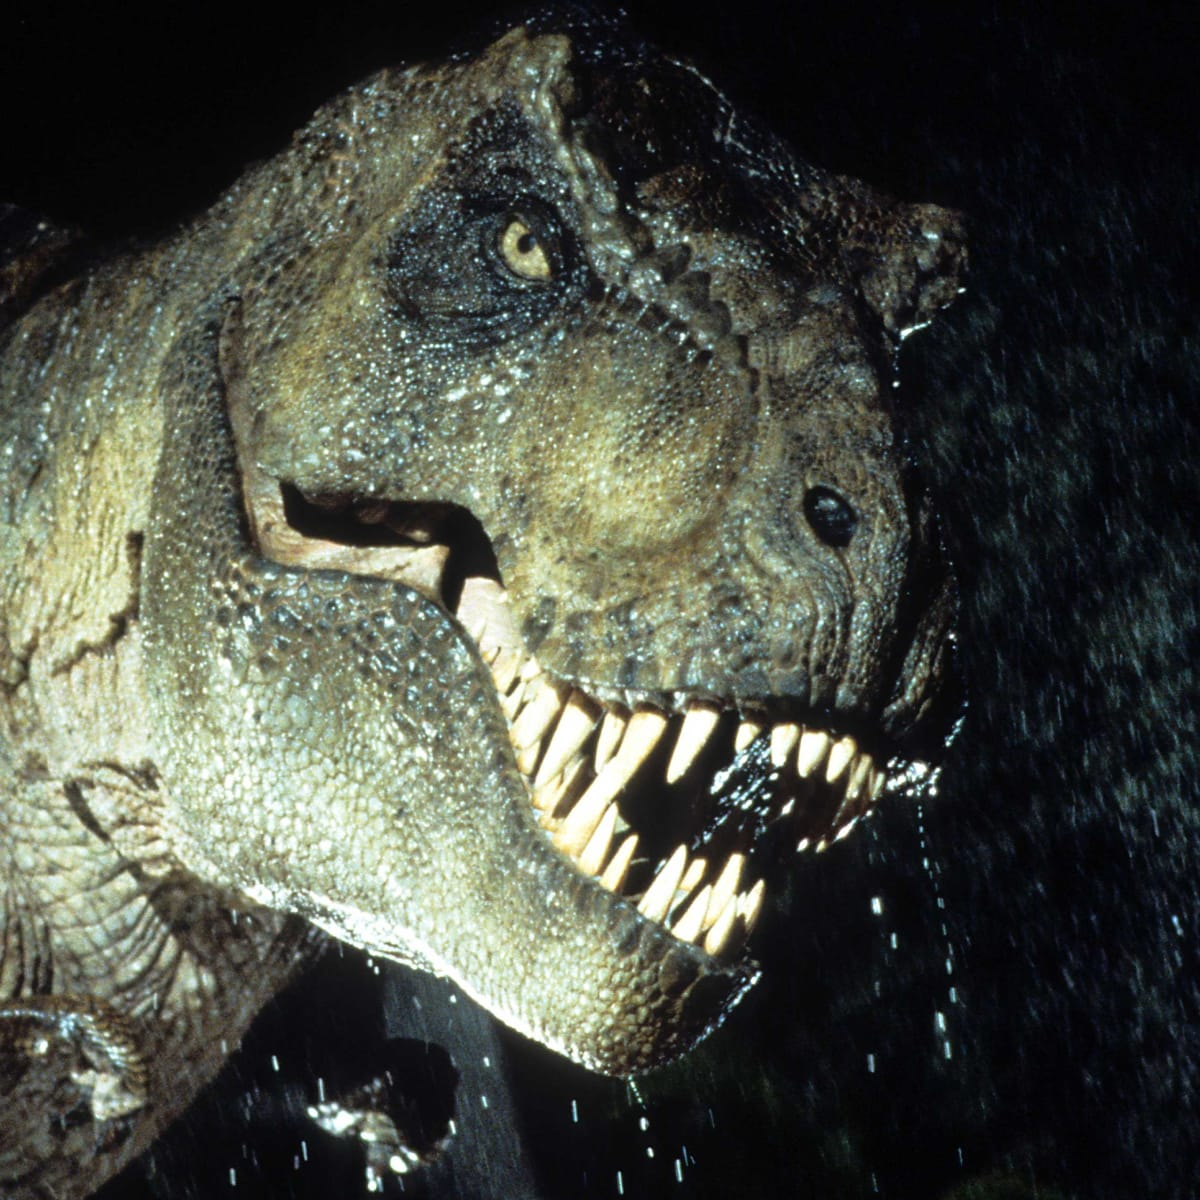 Jurassic Park S Dinosaurs How Realistic Were They History